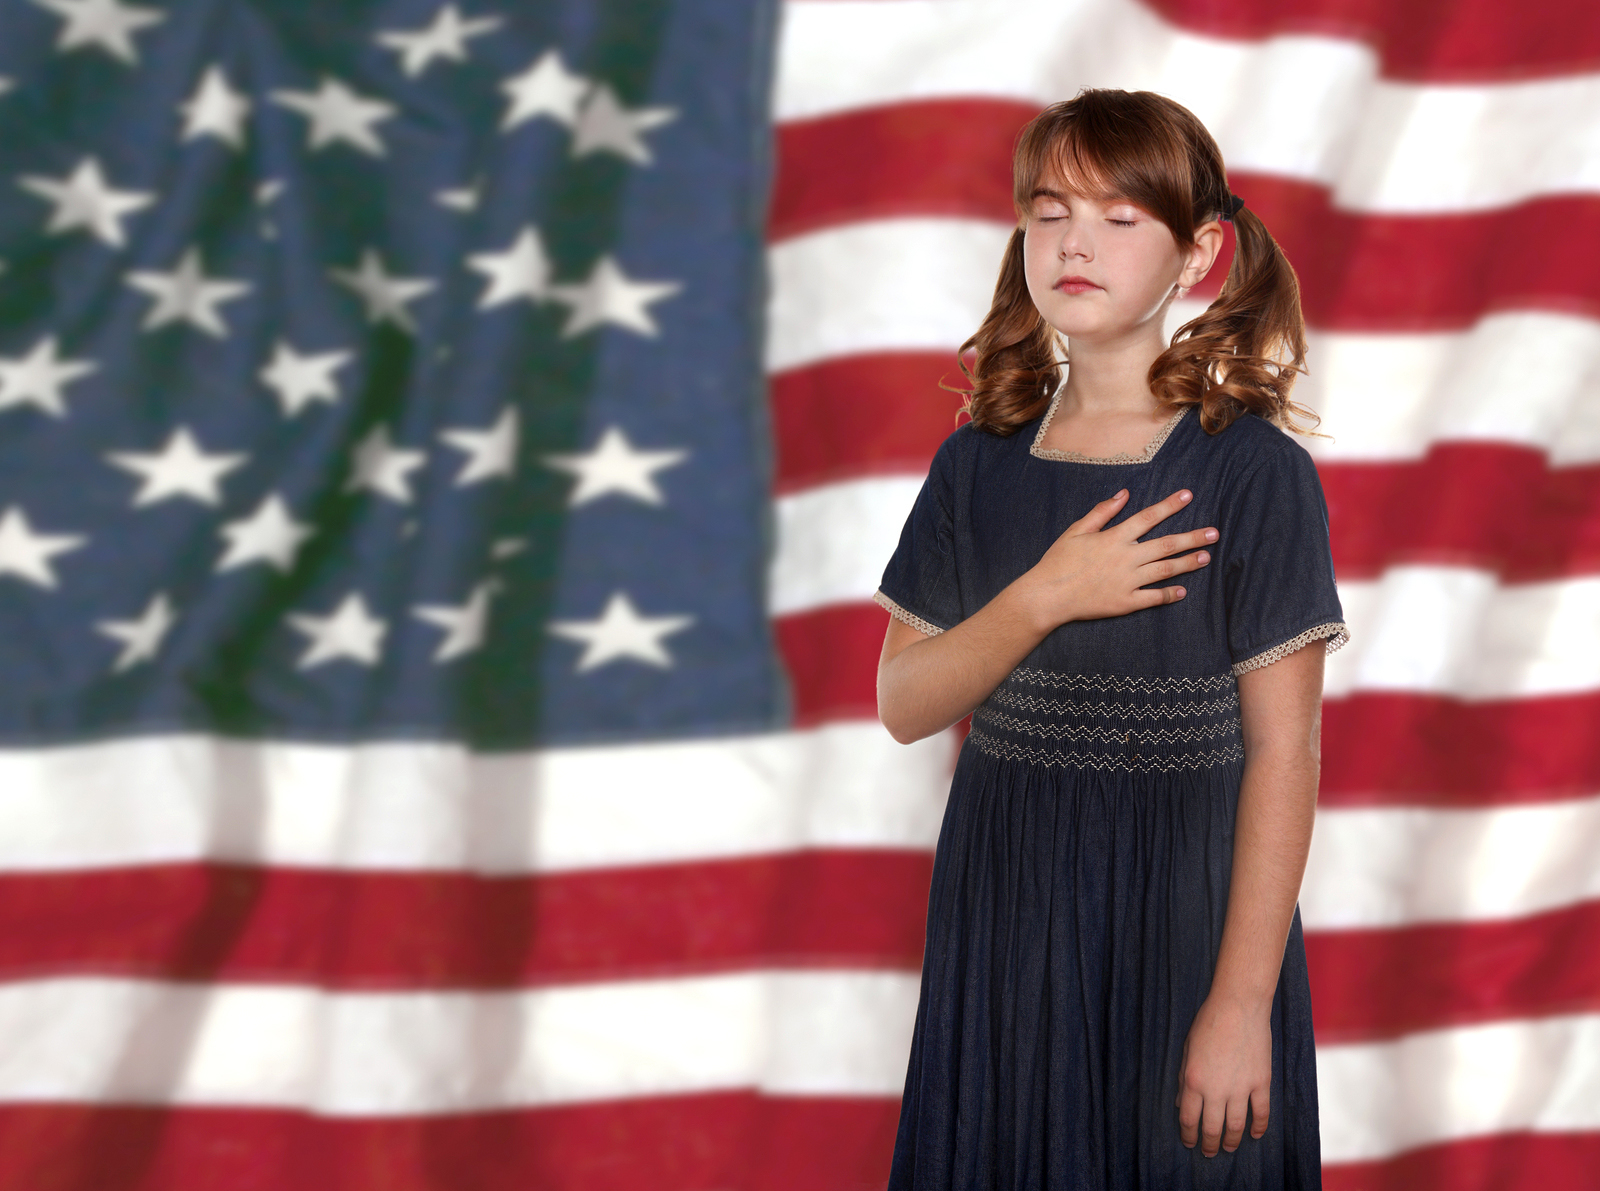 the pledge of allegiance Under the district's current rules, teachers must lead students in a daily pledge of allegiance, though students can choose not to participate for any reason.